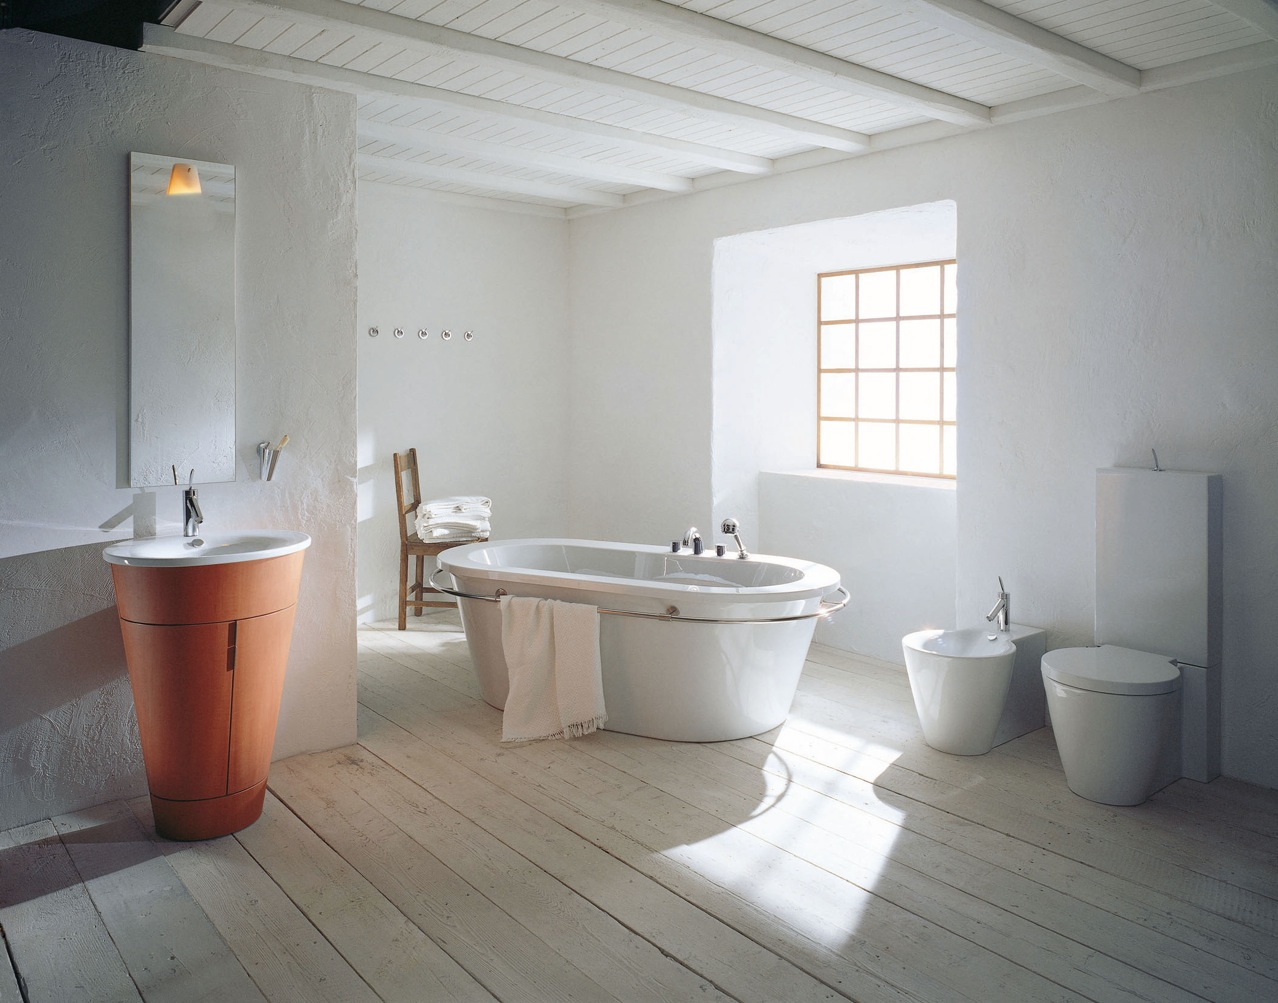 Philipe starck rustic modern bathroom decor for Modern bathroom ideas